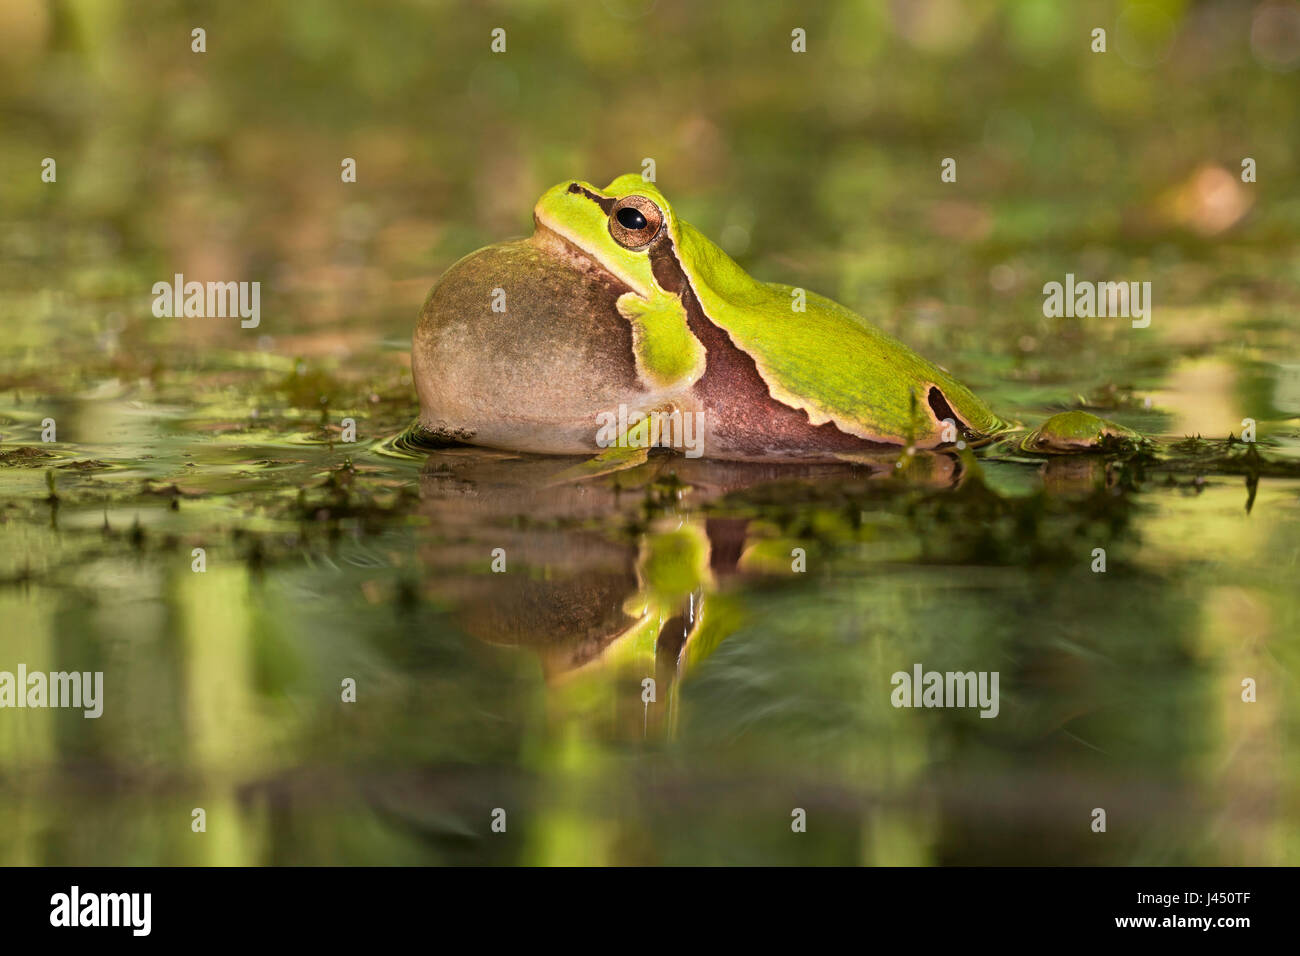 male common tree frog calling - Stock Image